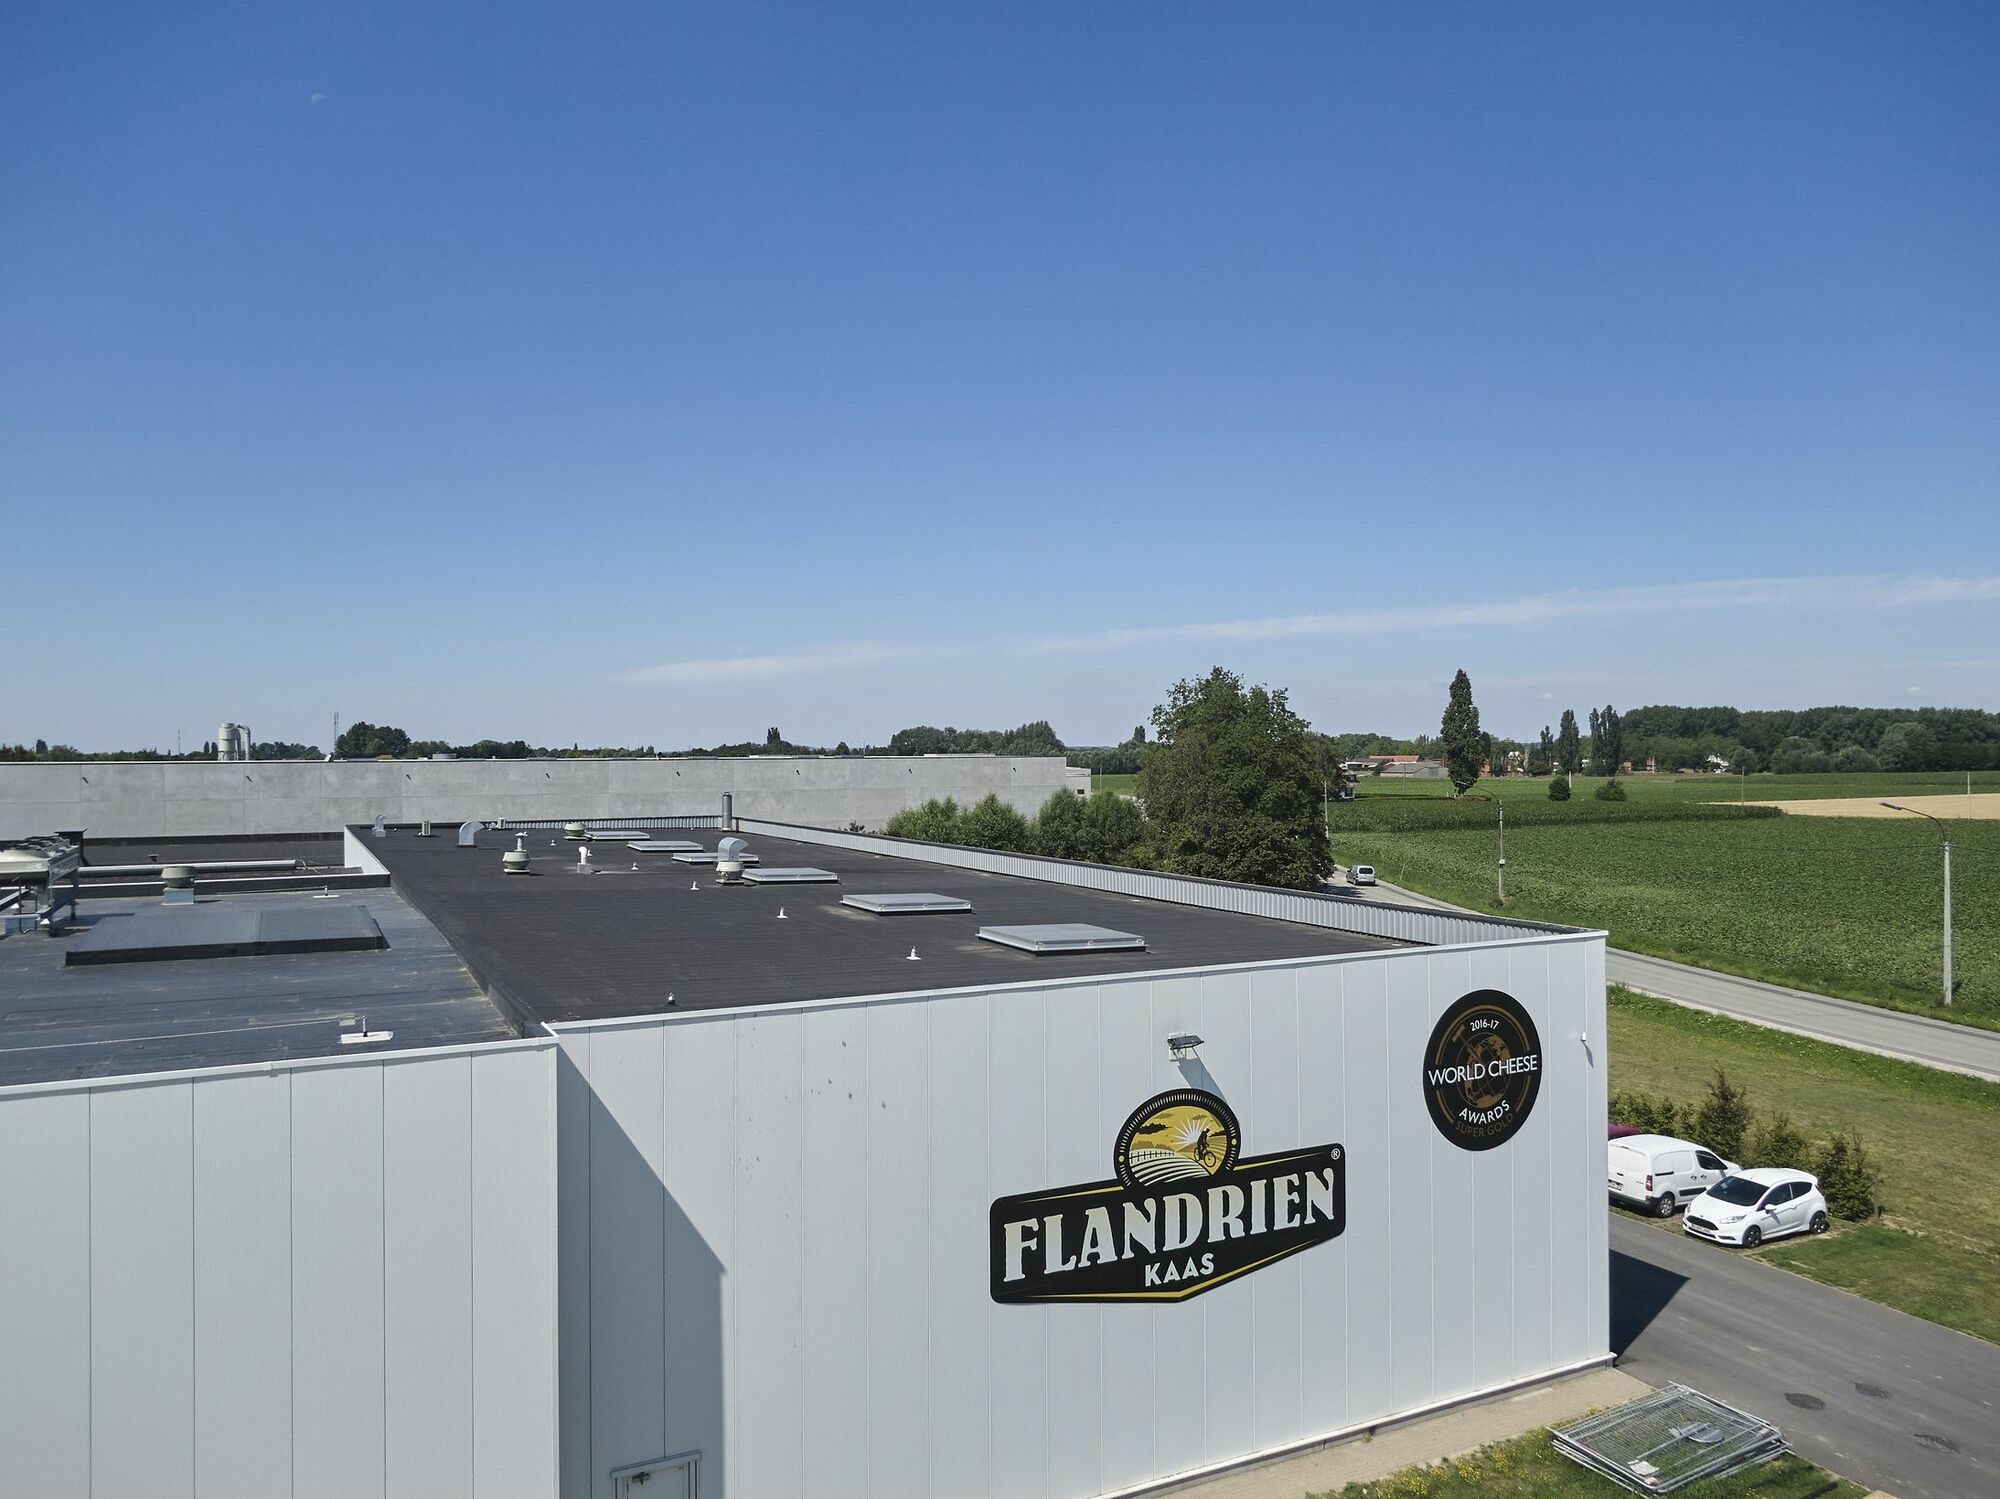 Flandrien outside